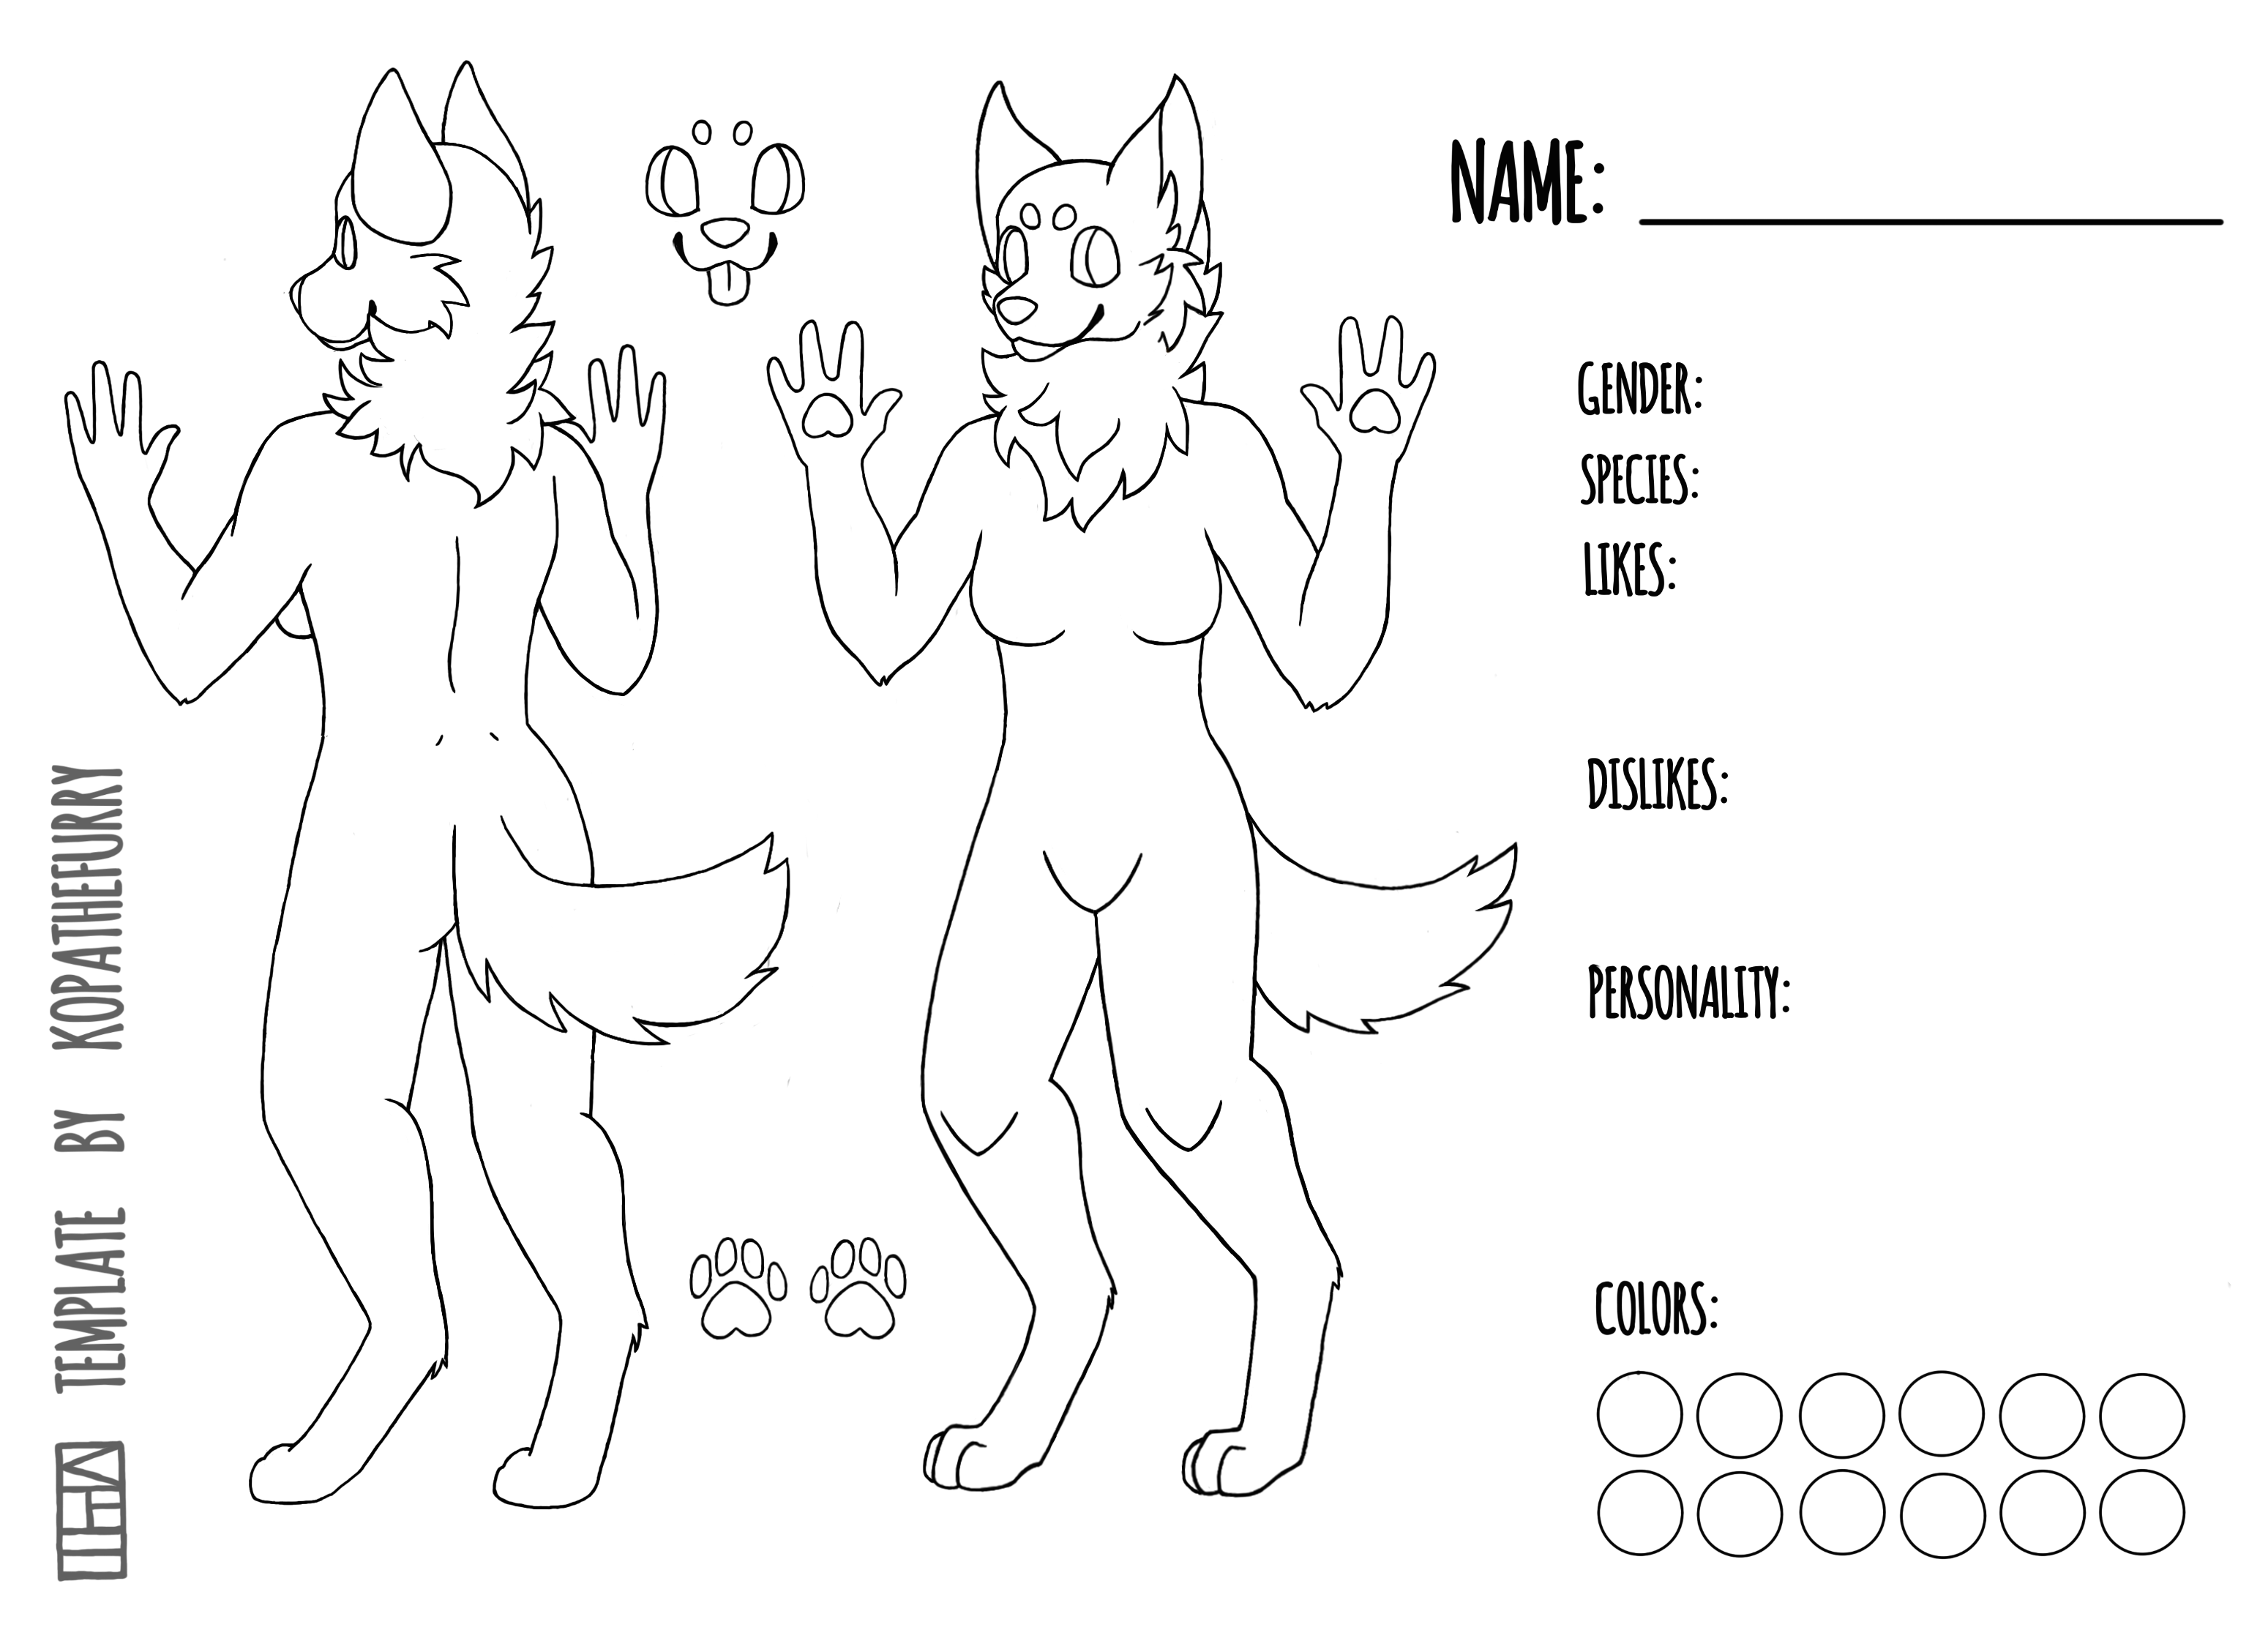 FREE Female Canine Template / Base by calypso art on DeviantArt